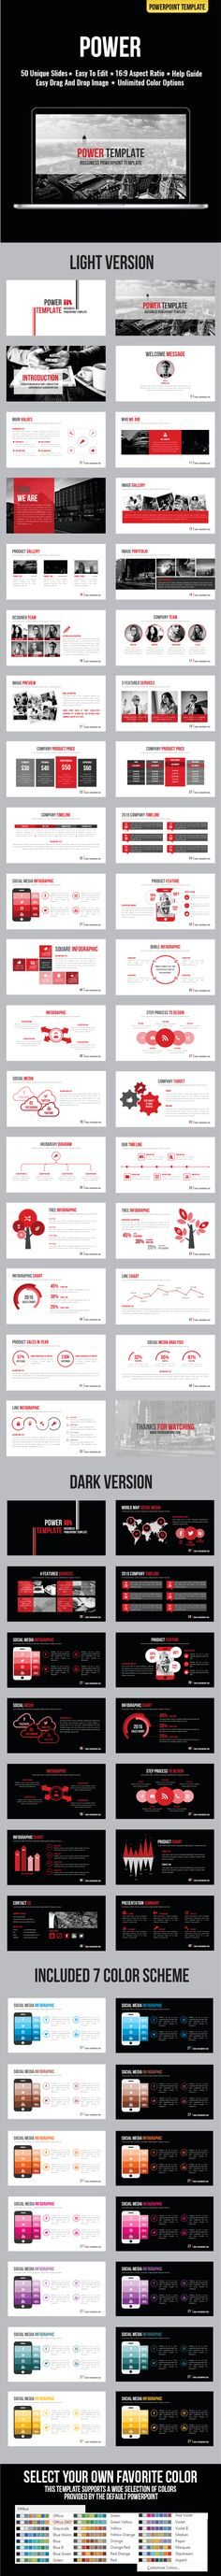 PowerPoint Template #design Download: http://graphicriver.net/item/power-template/12324281?ref=ksioks Presentation Layout, Powerpoint Presentation Templates, Power Point Presentation, Professional Presentation Templates, Presentation Slides, Ppt Template, Ppt Design, Slide Design, Layout Design